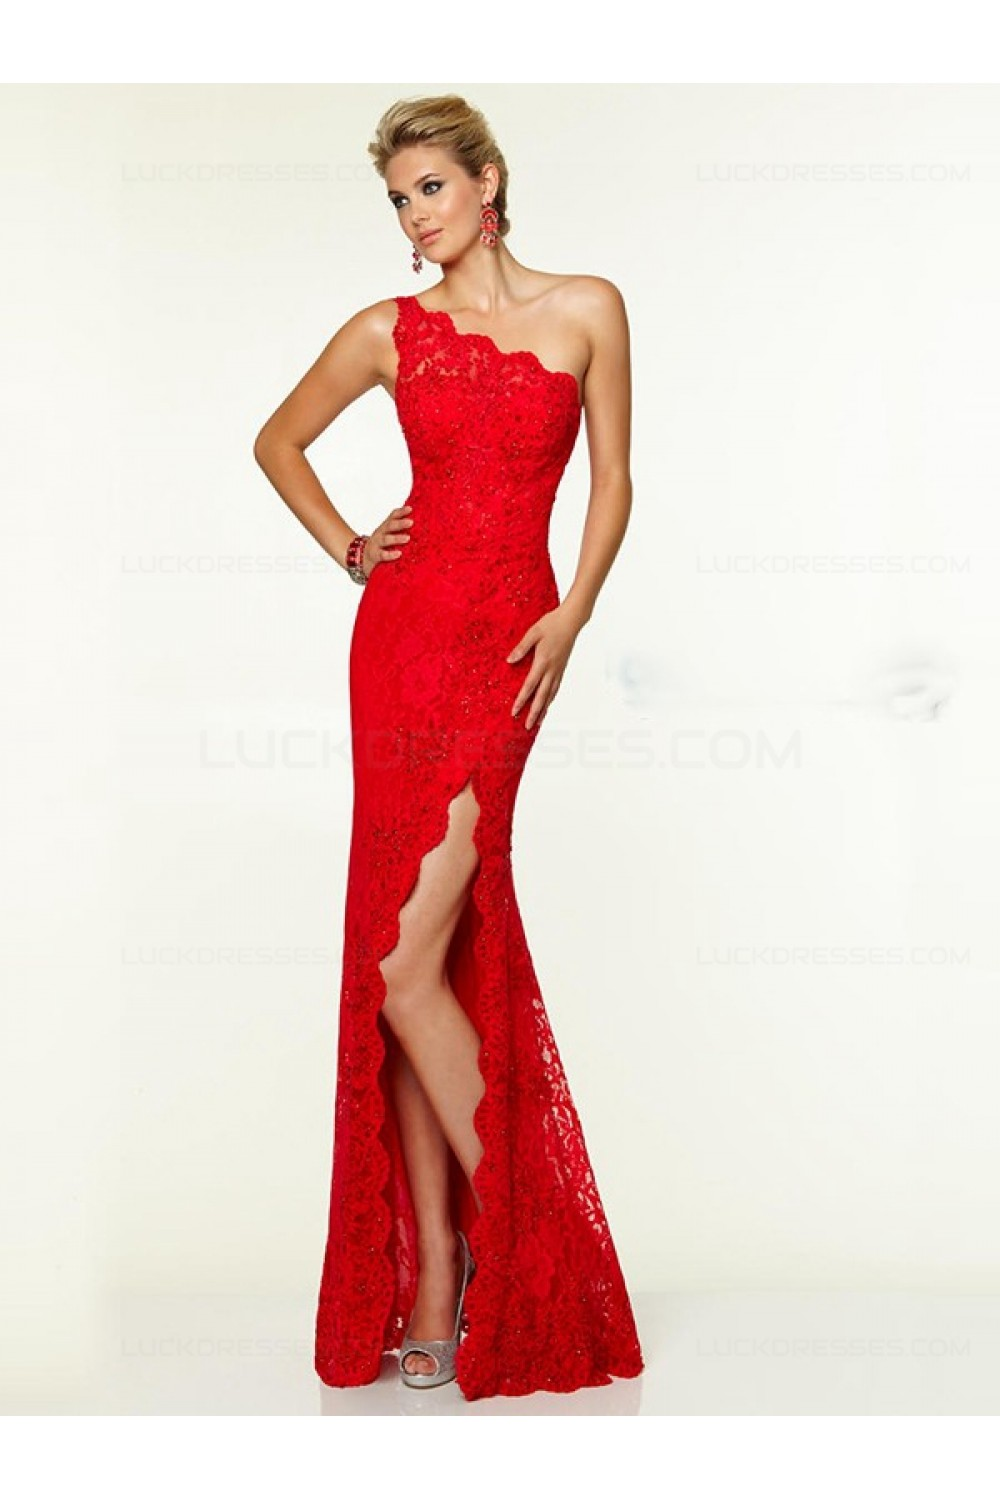 Red Lace Evening Dresses